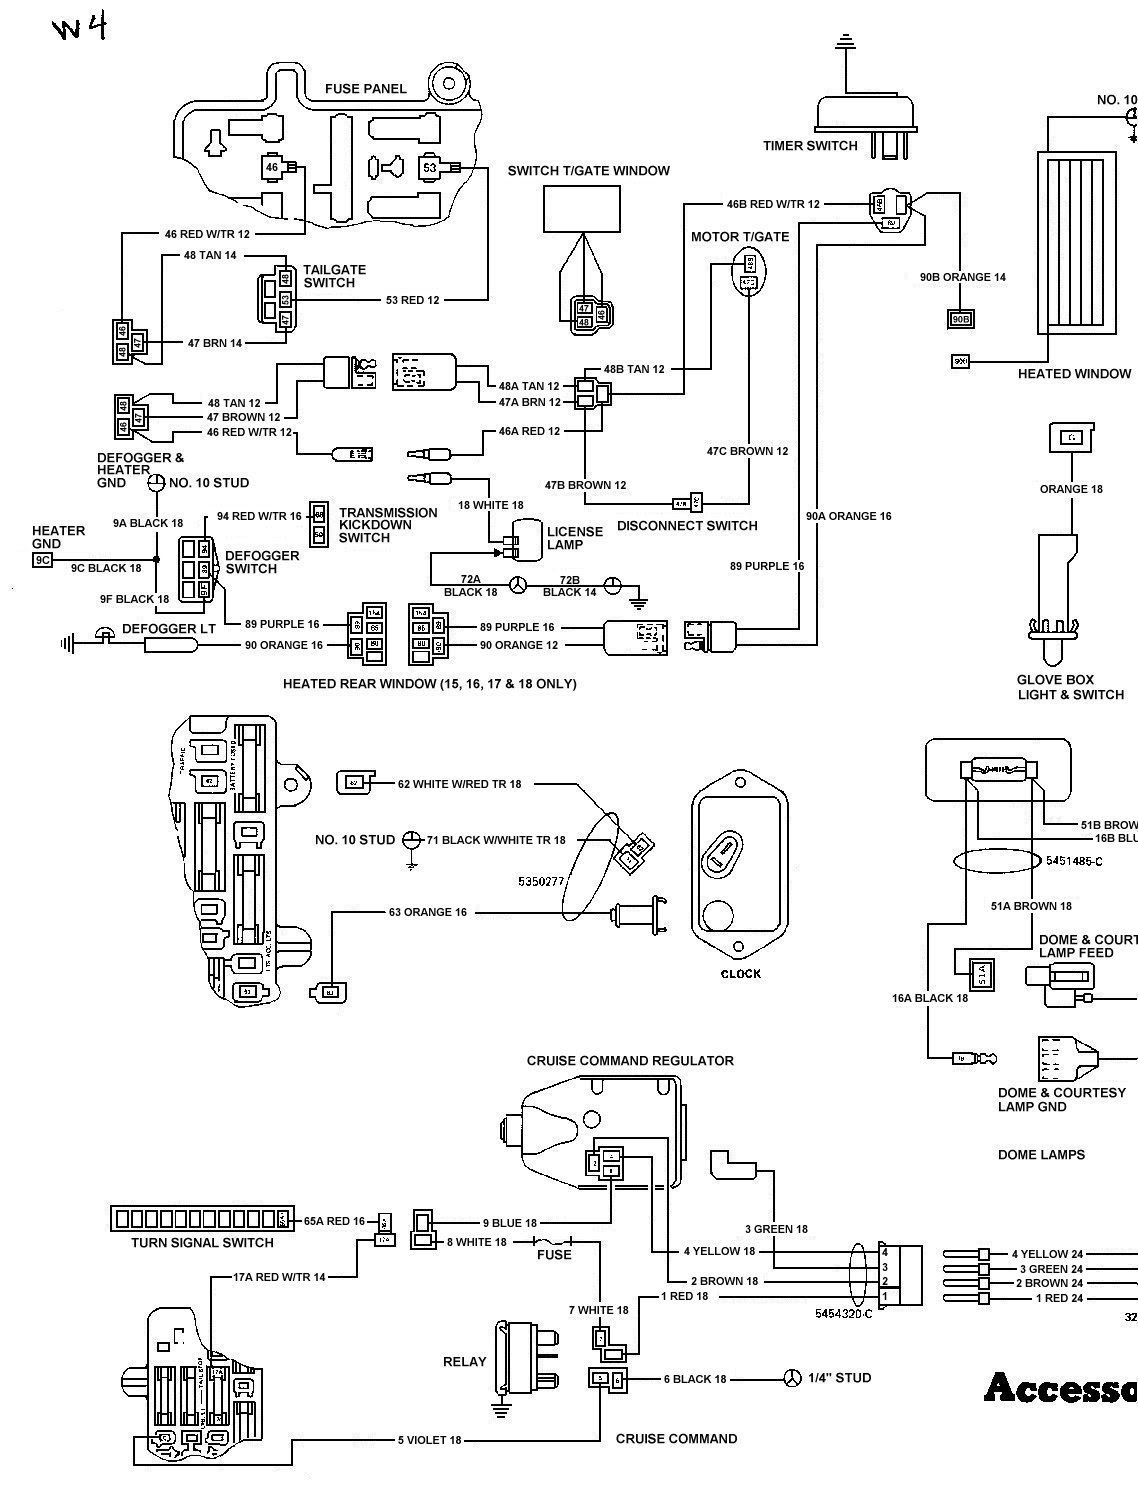 1983 Jeep Cj7 Wiring Diagram Turn And Marker Wiring Diagrams Deliver Deliver Miglioribanche It